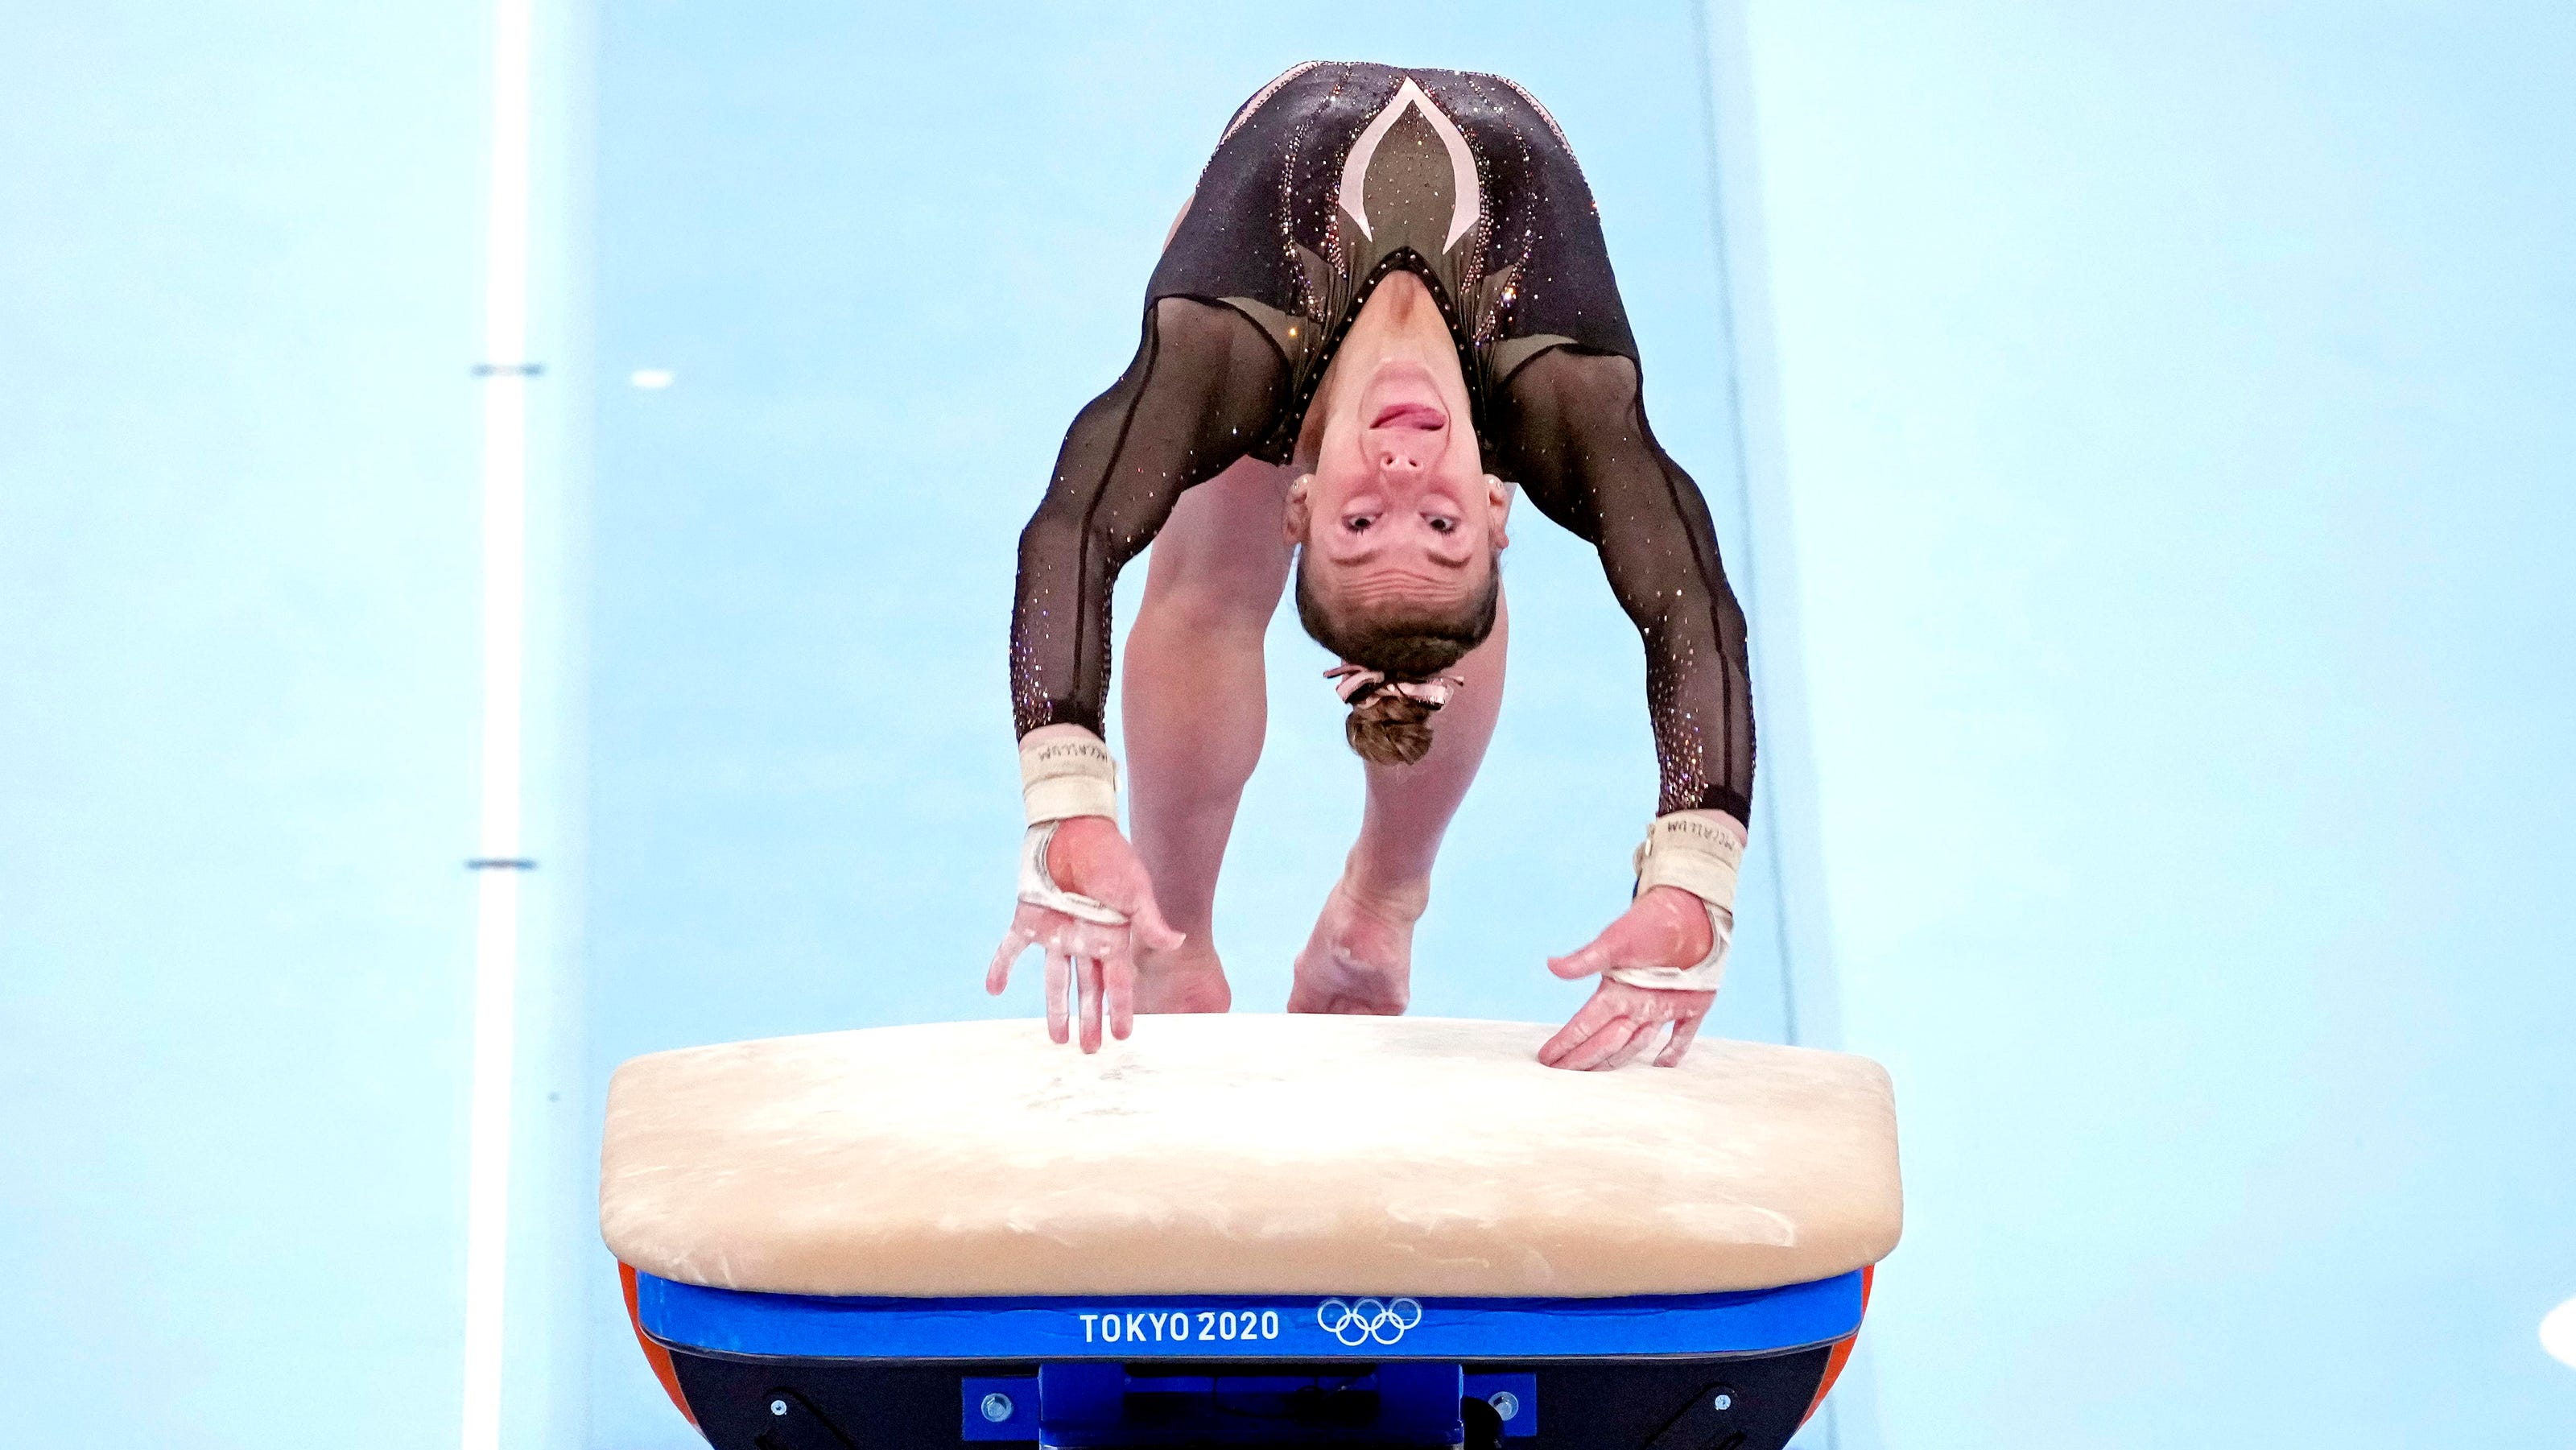 Tokyo Olympics schedule: Gymnastics events finals highlight Day 9 in Tokyo